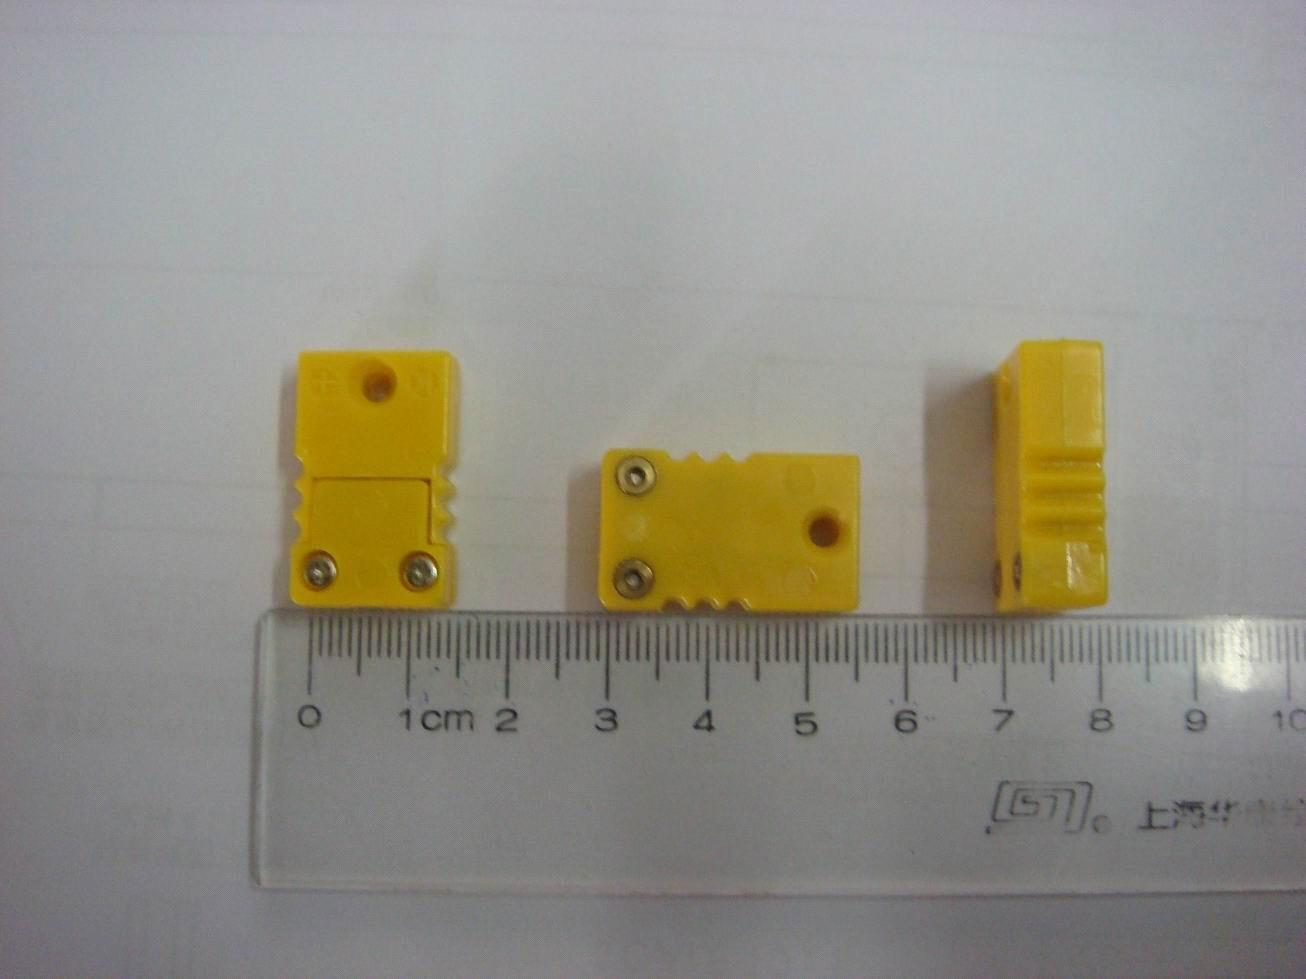 hight resolution of type k thermocouple connector male female yellow color small size